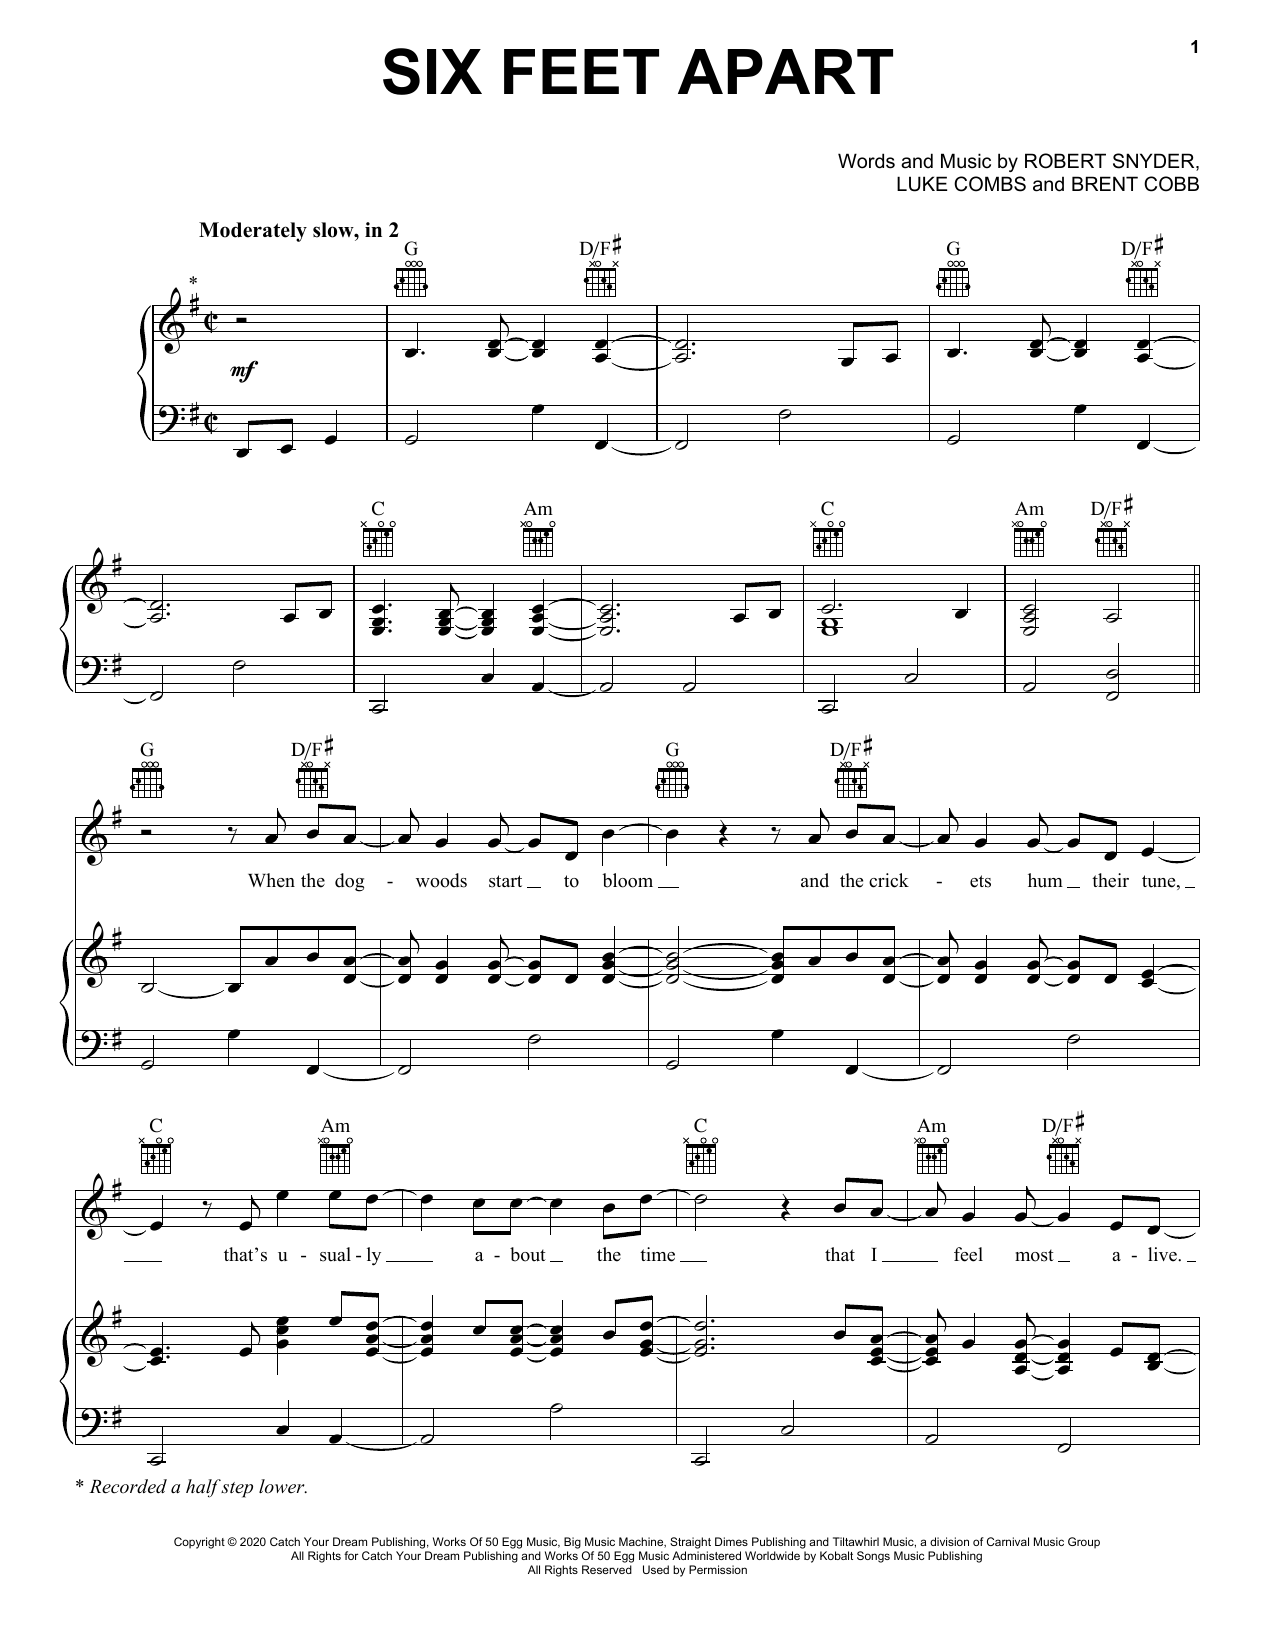 Luke Combs Six Feet Apart sheet music notes and chords. Download Printable PDF.